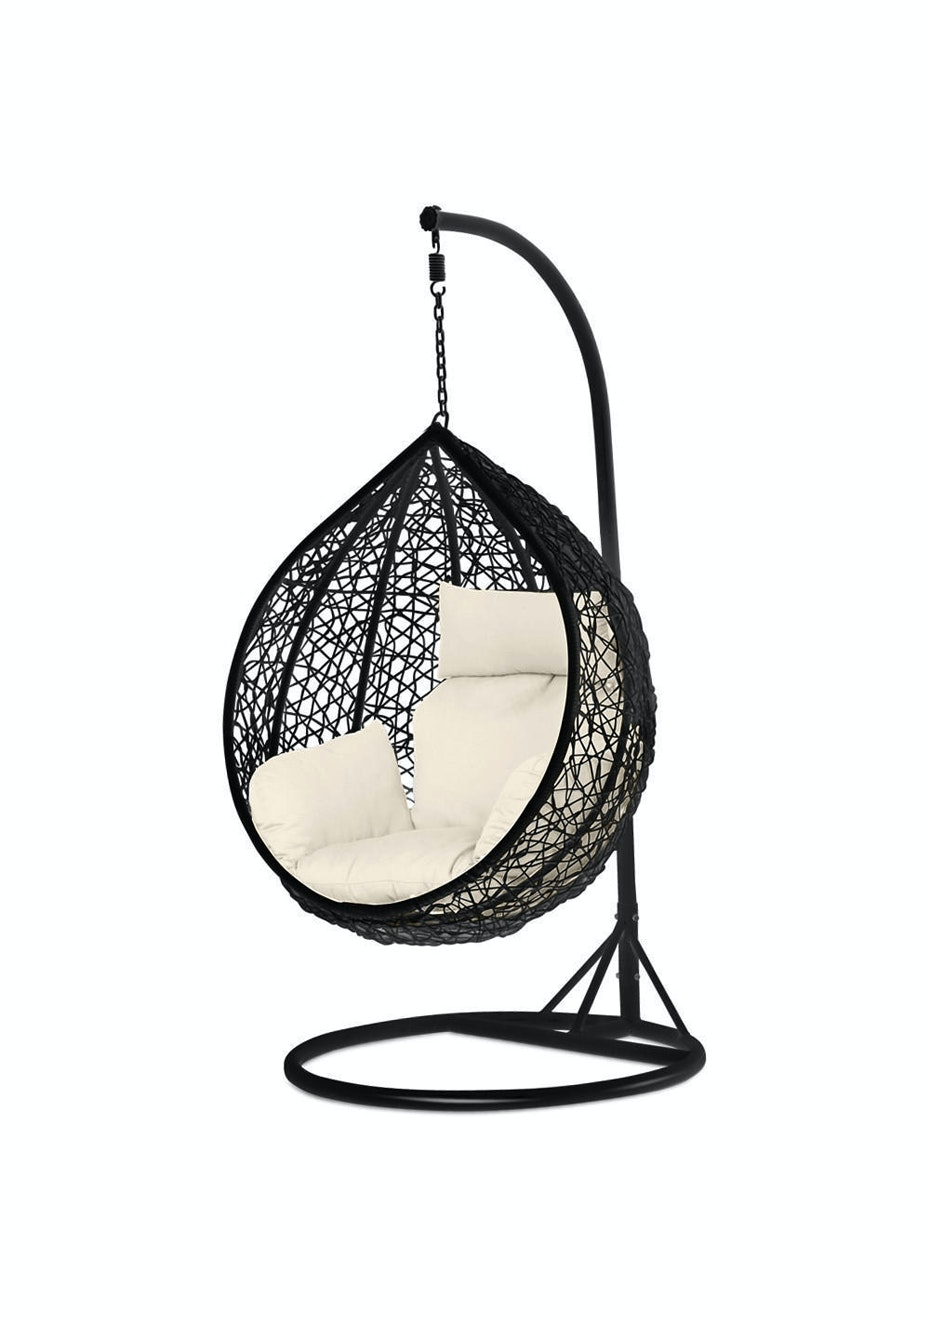 Ordinaire Outdoor Egg Shape Chair   Black   Outdoor Furniture Back By ...